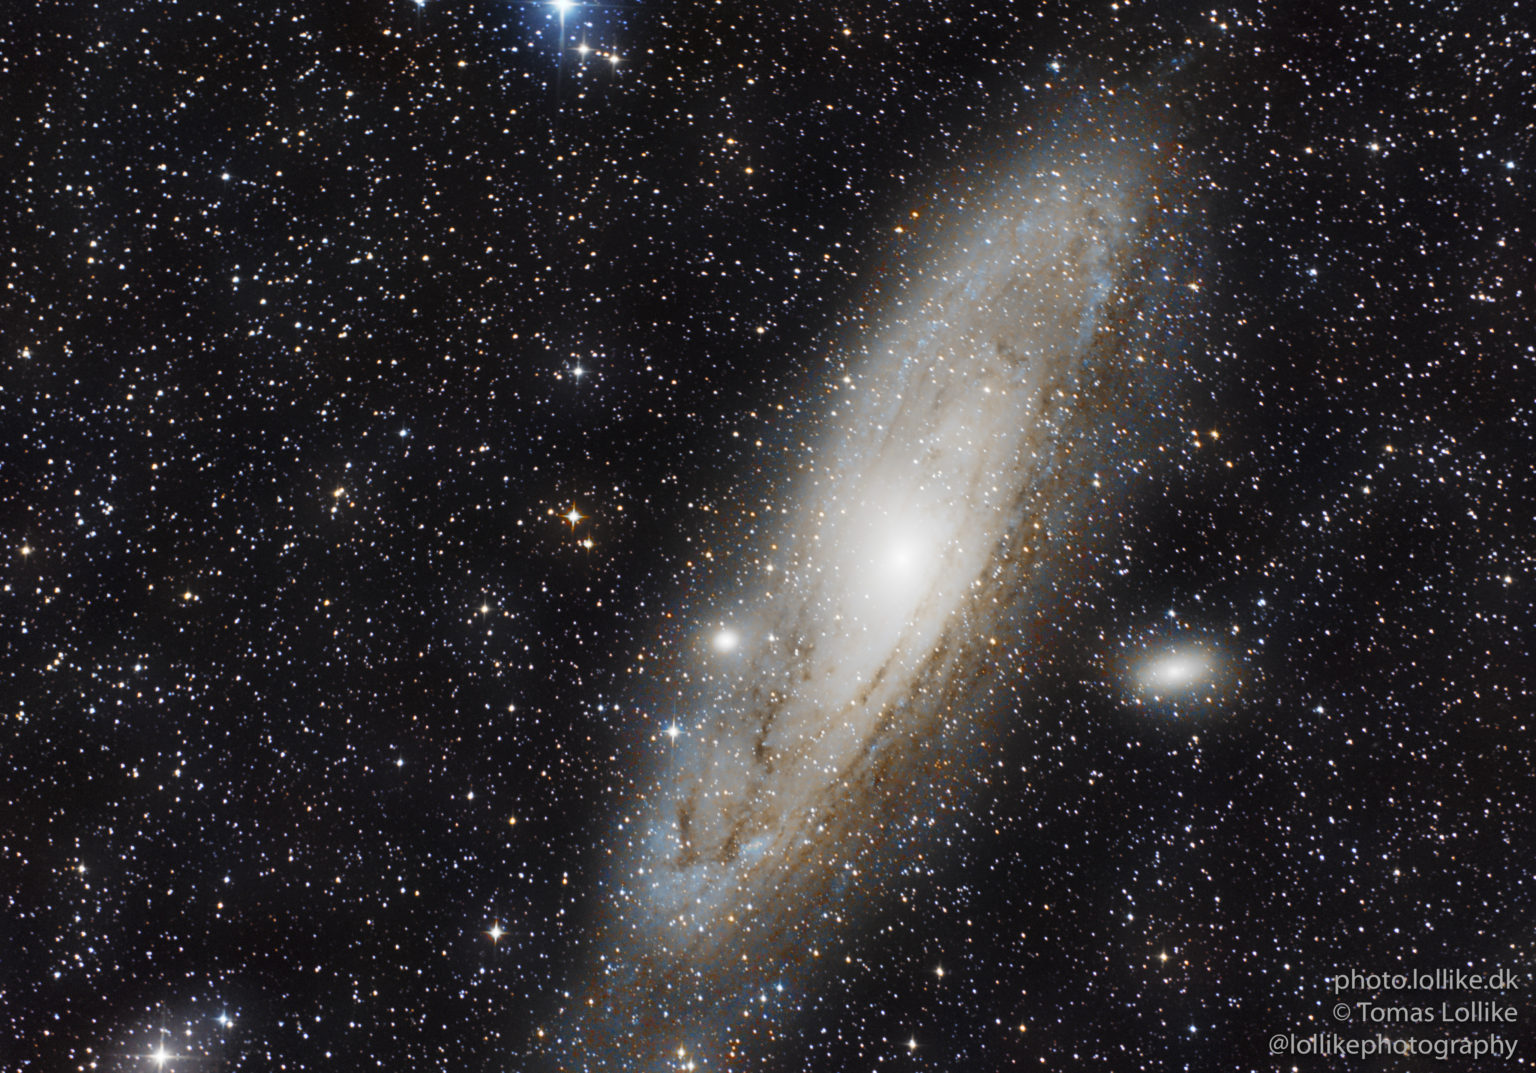 My best image of Andromeda yet!